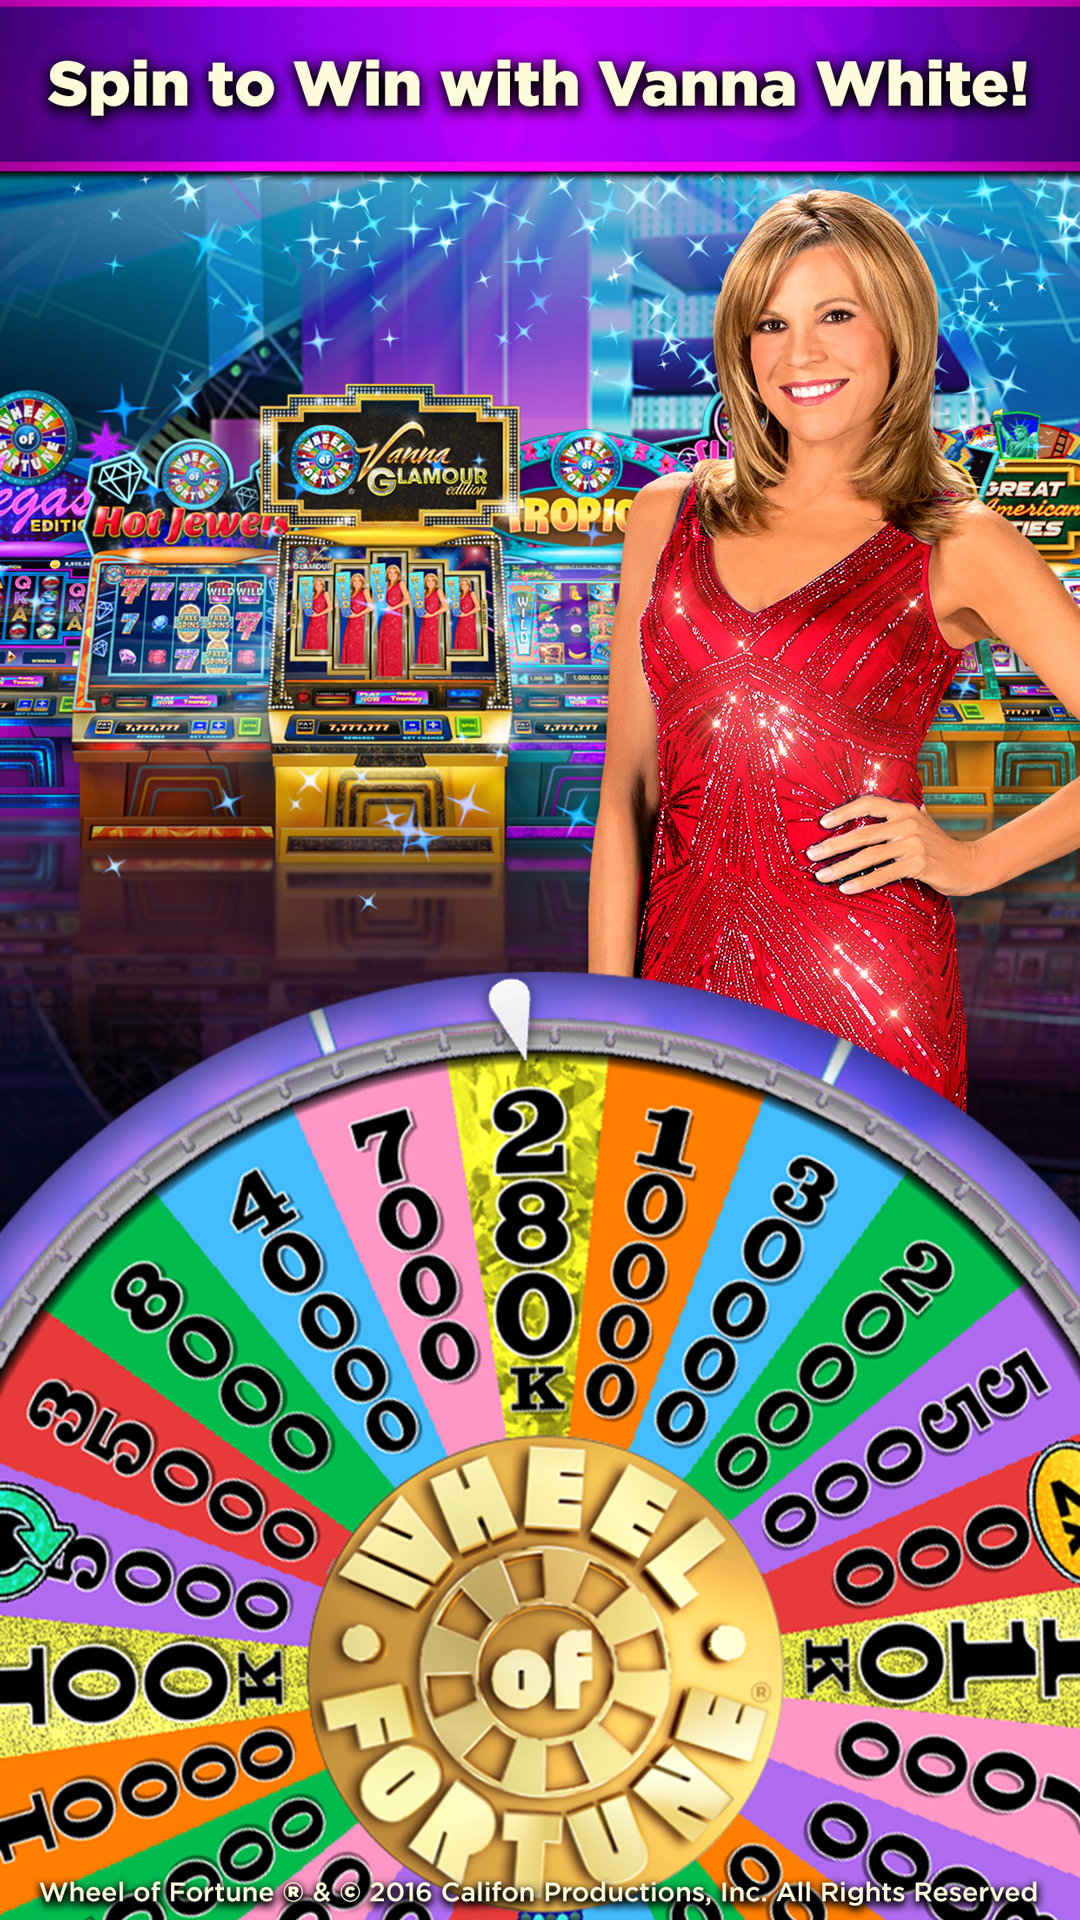 wheel of fortune slots the ultimate collection with vanna white appstore for android. Black Bedroom Furniture Sets. Home Design Ideas